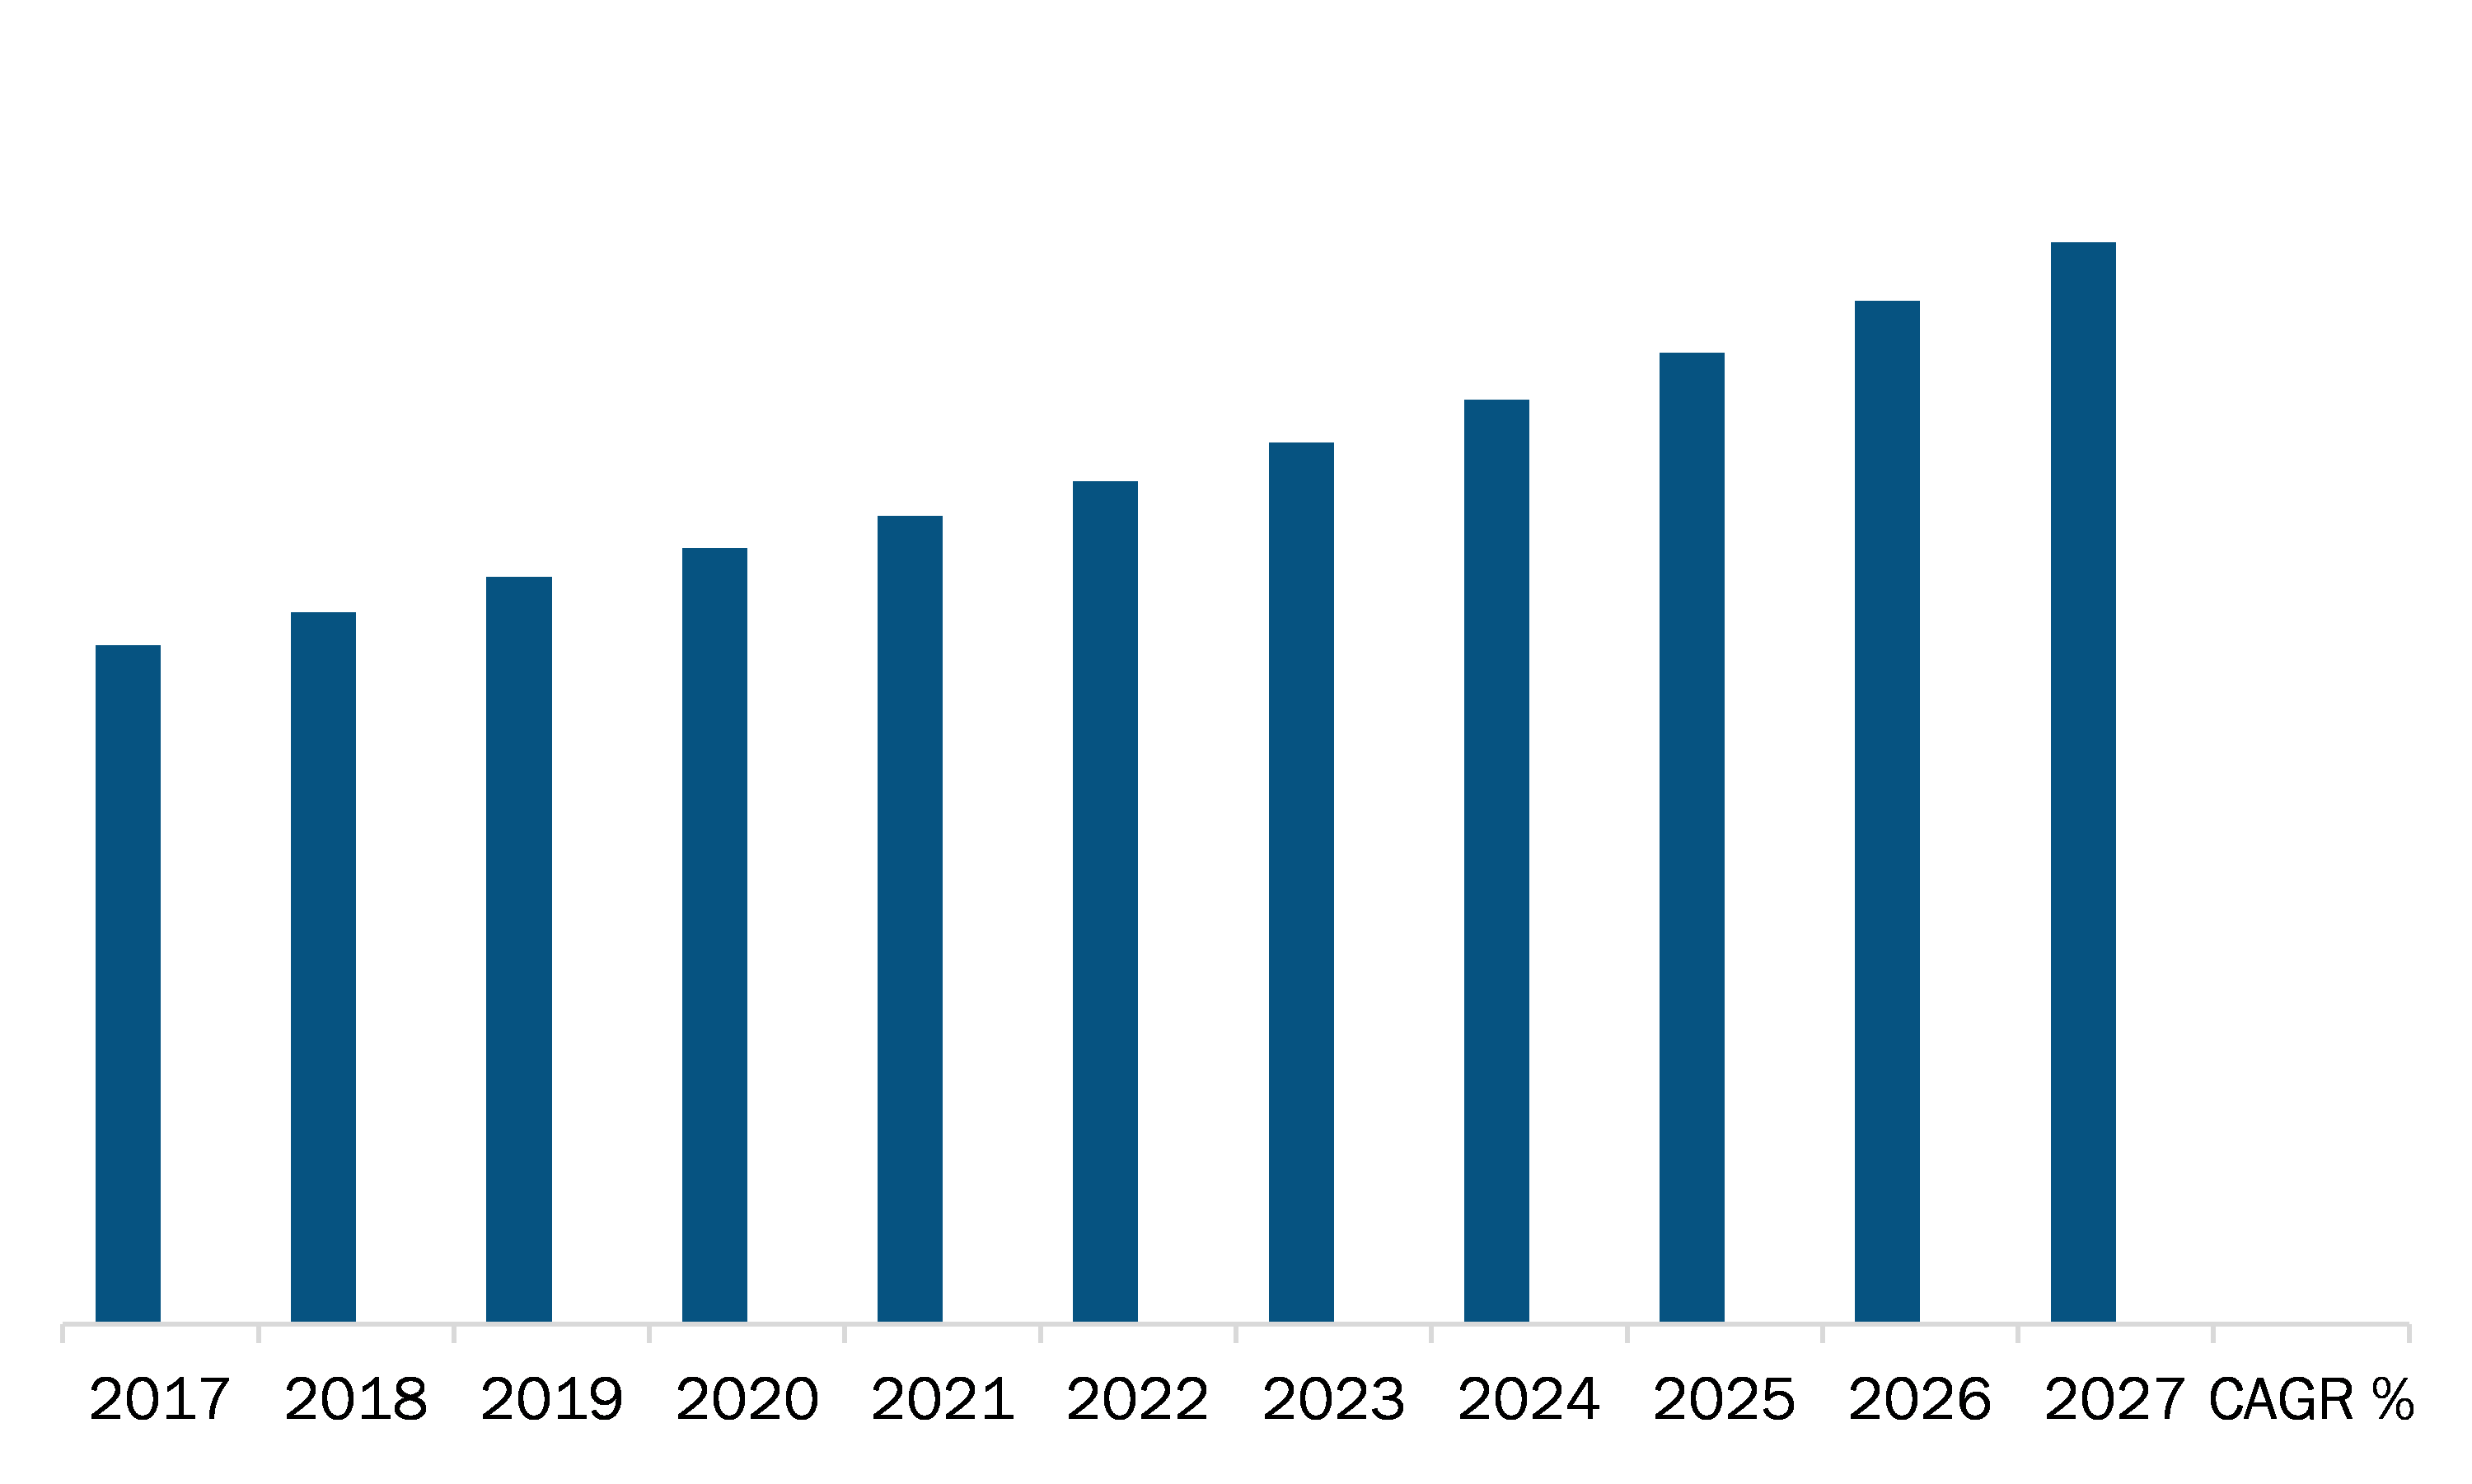 North America Ceramic Injection Molding Market Revenue and Forecast to 2027 (US$ Million)